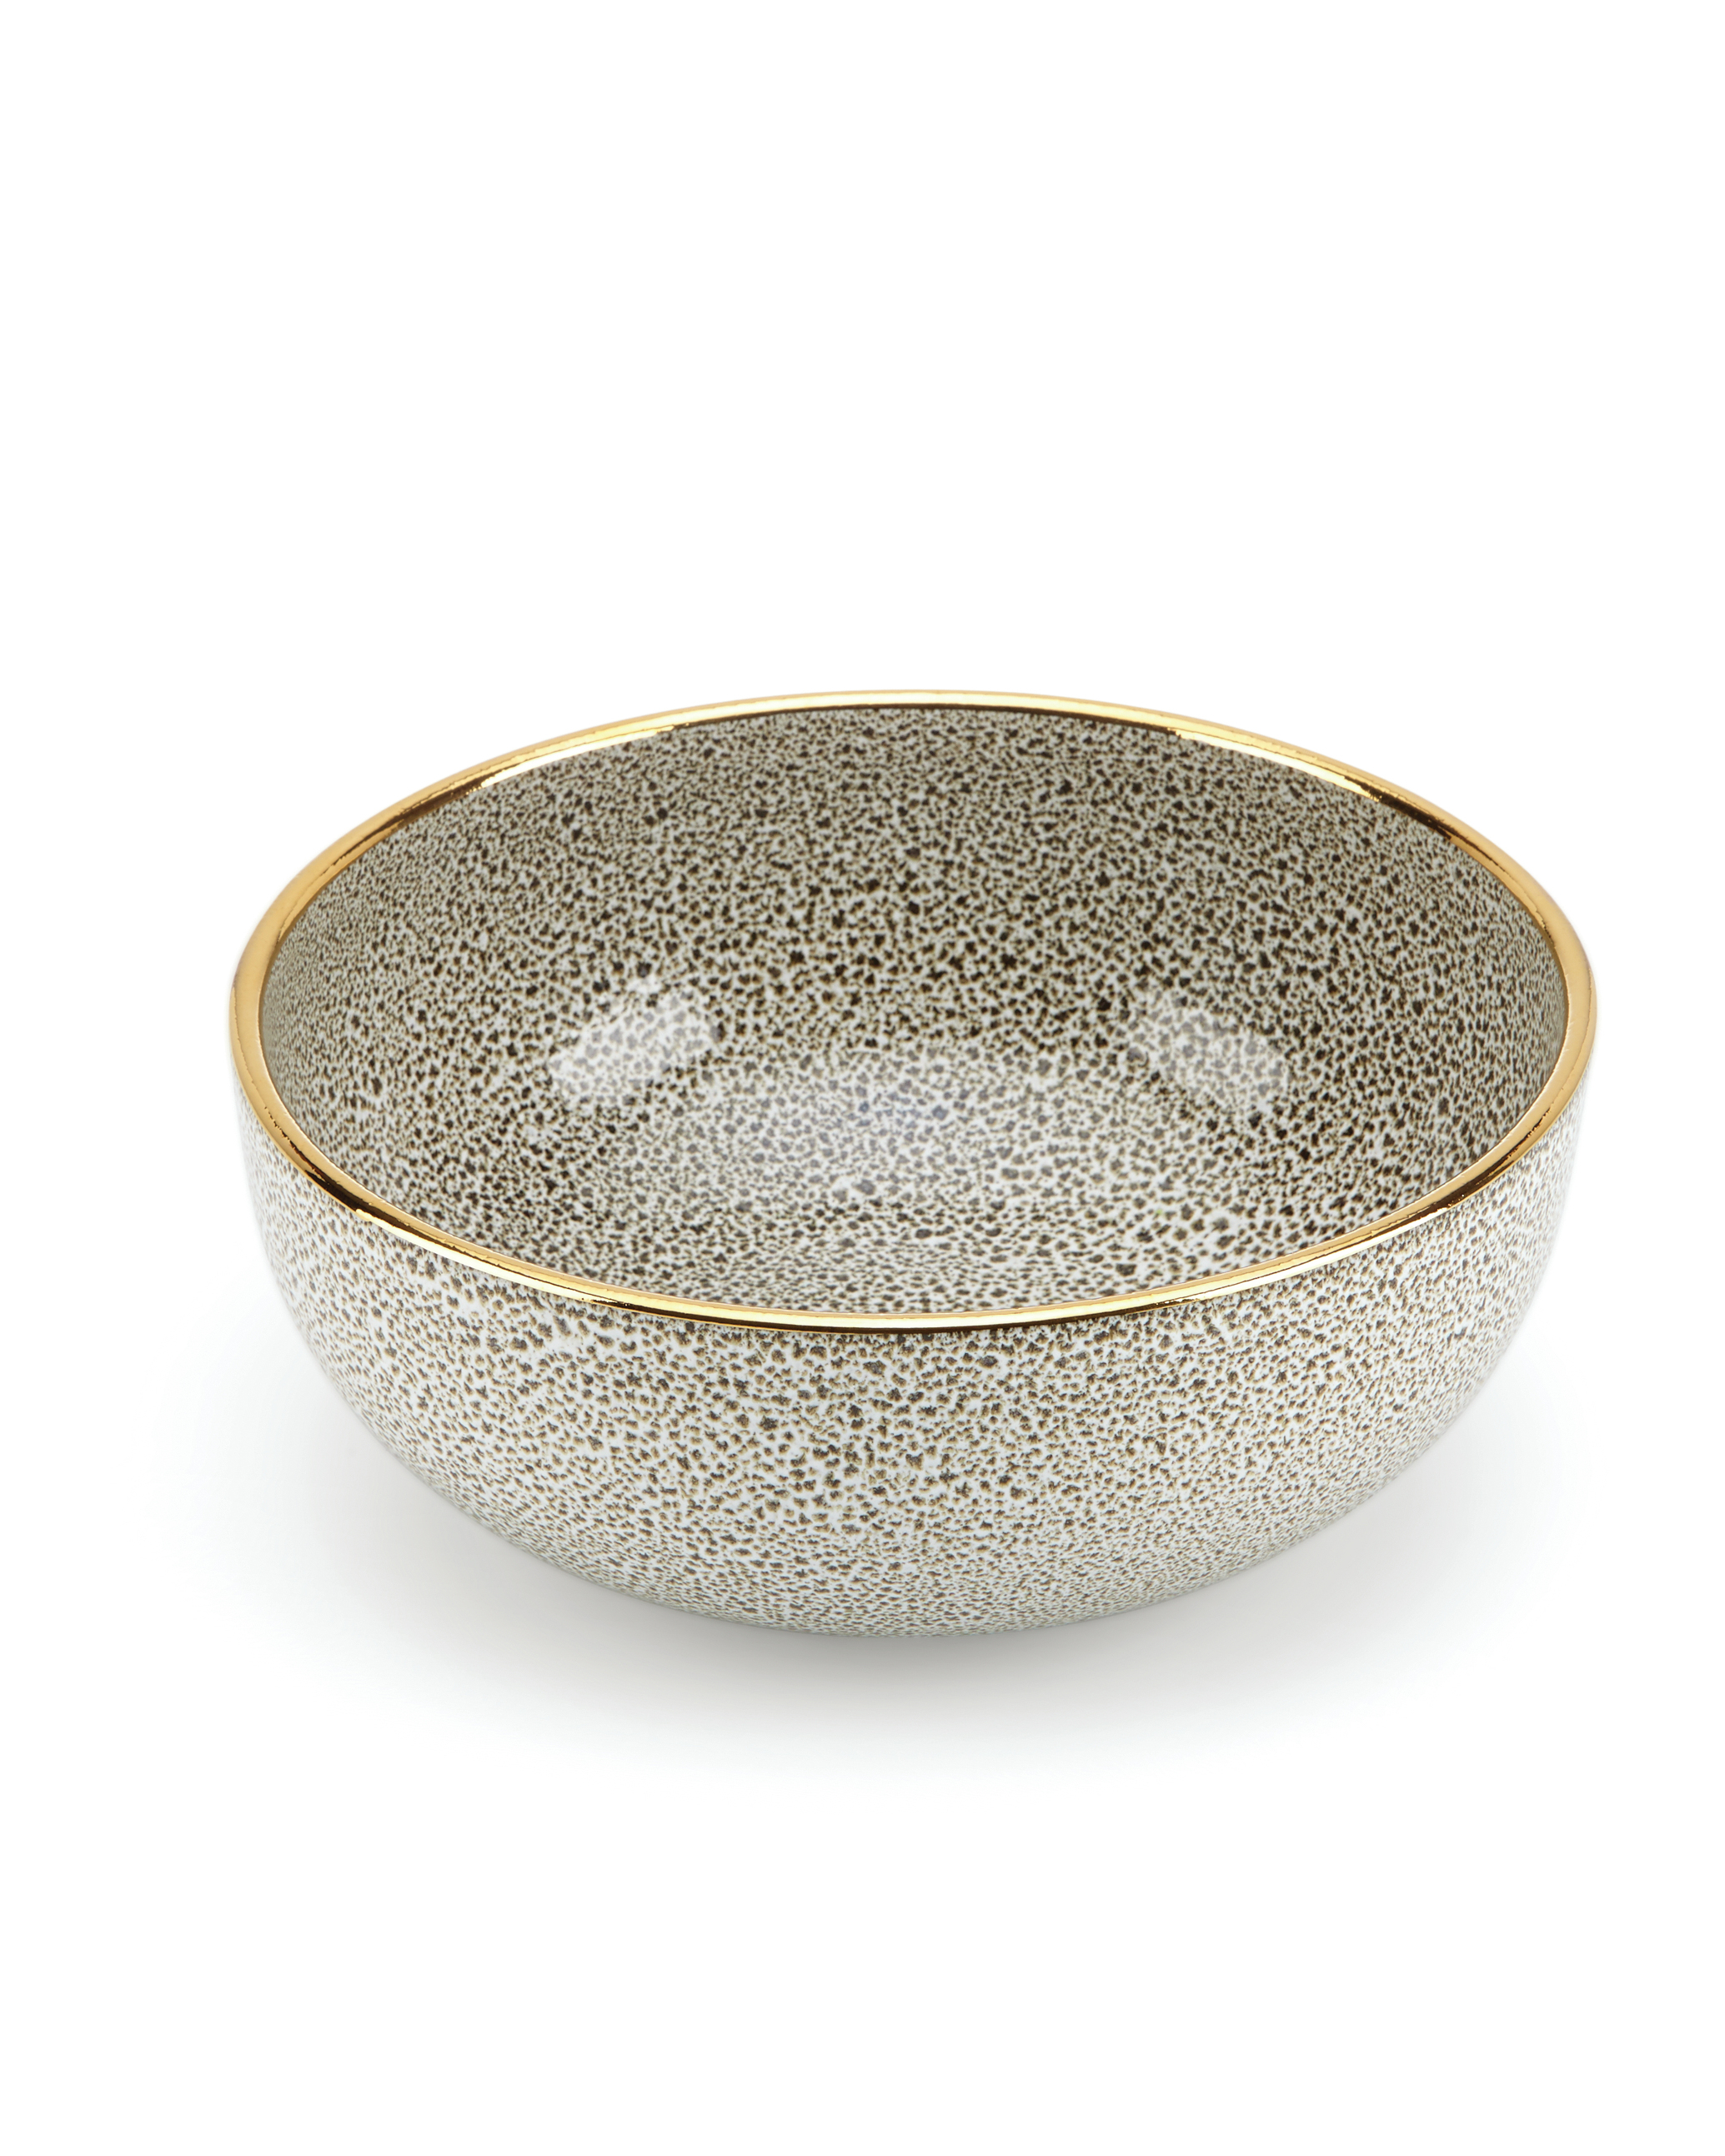 china-registry-luxe-michael-wainwright-panthera-bowl-1014.jpg